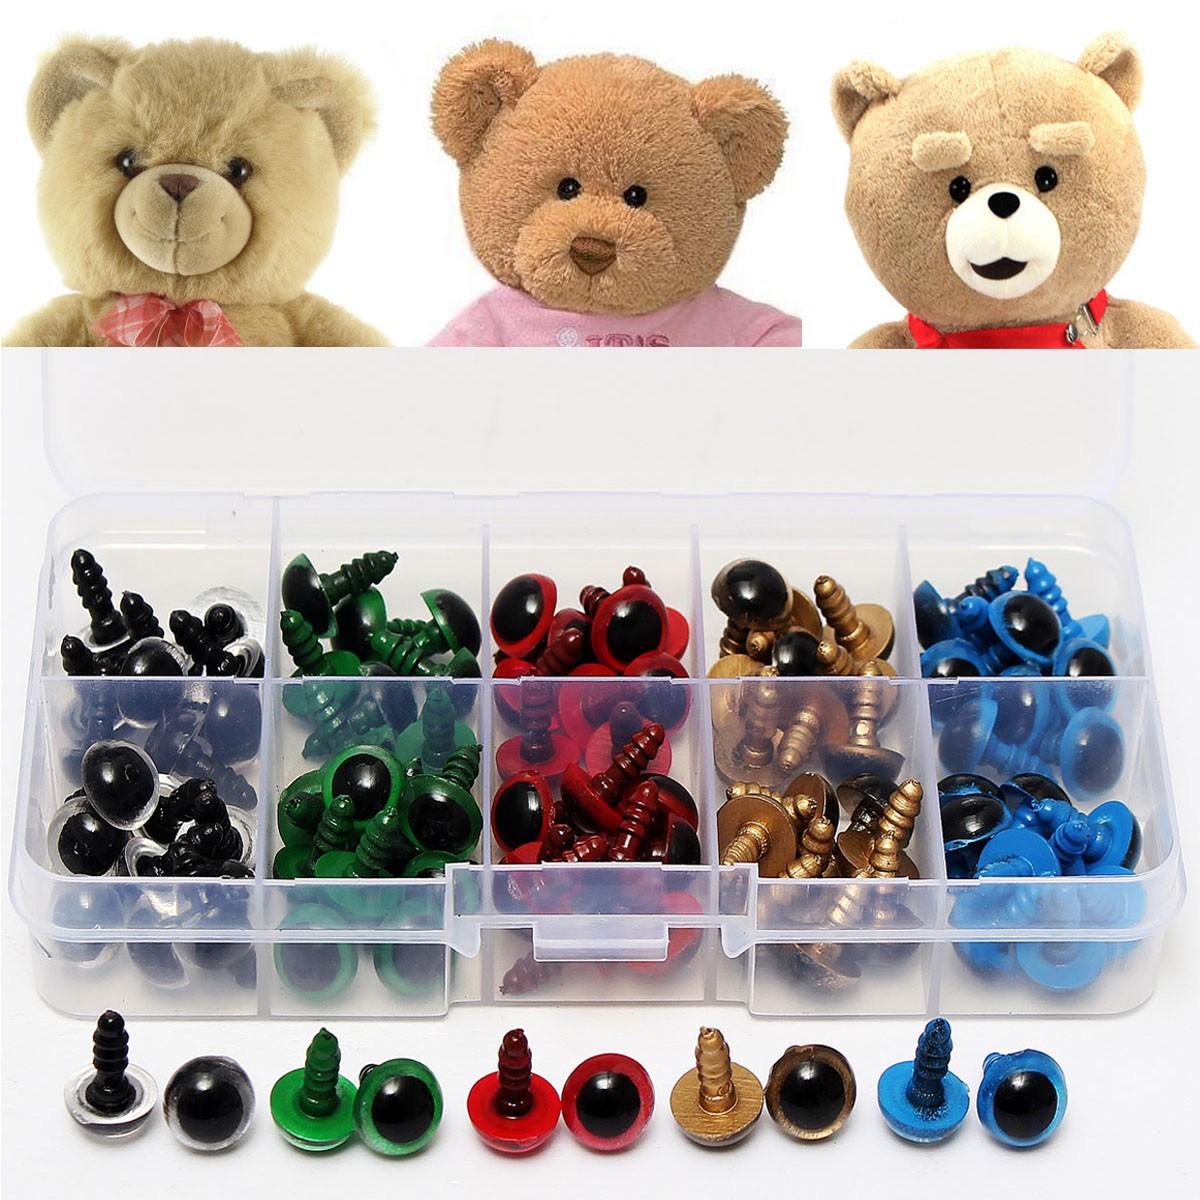 100Pcs 10mm 5Colors Plastic Safety Kid 3D Eyes Washer Toy Teddy Bear Doll Puppet Animal DIY Handmade